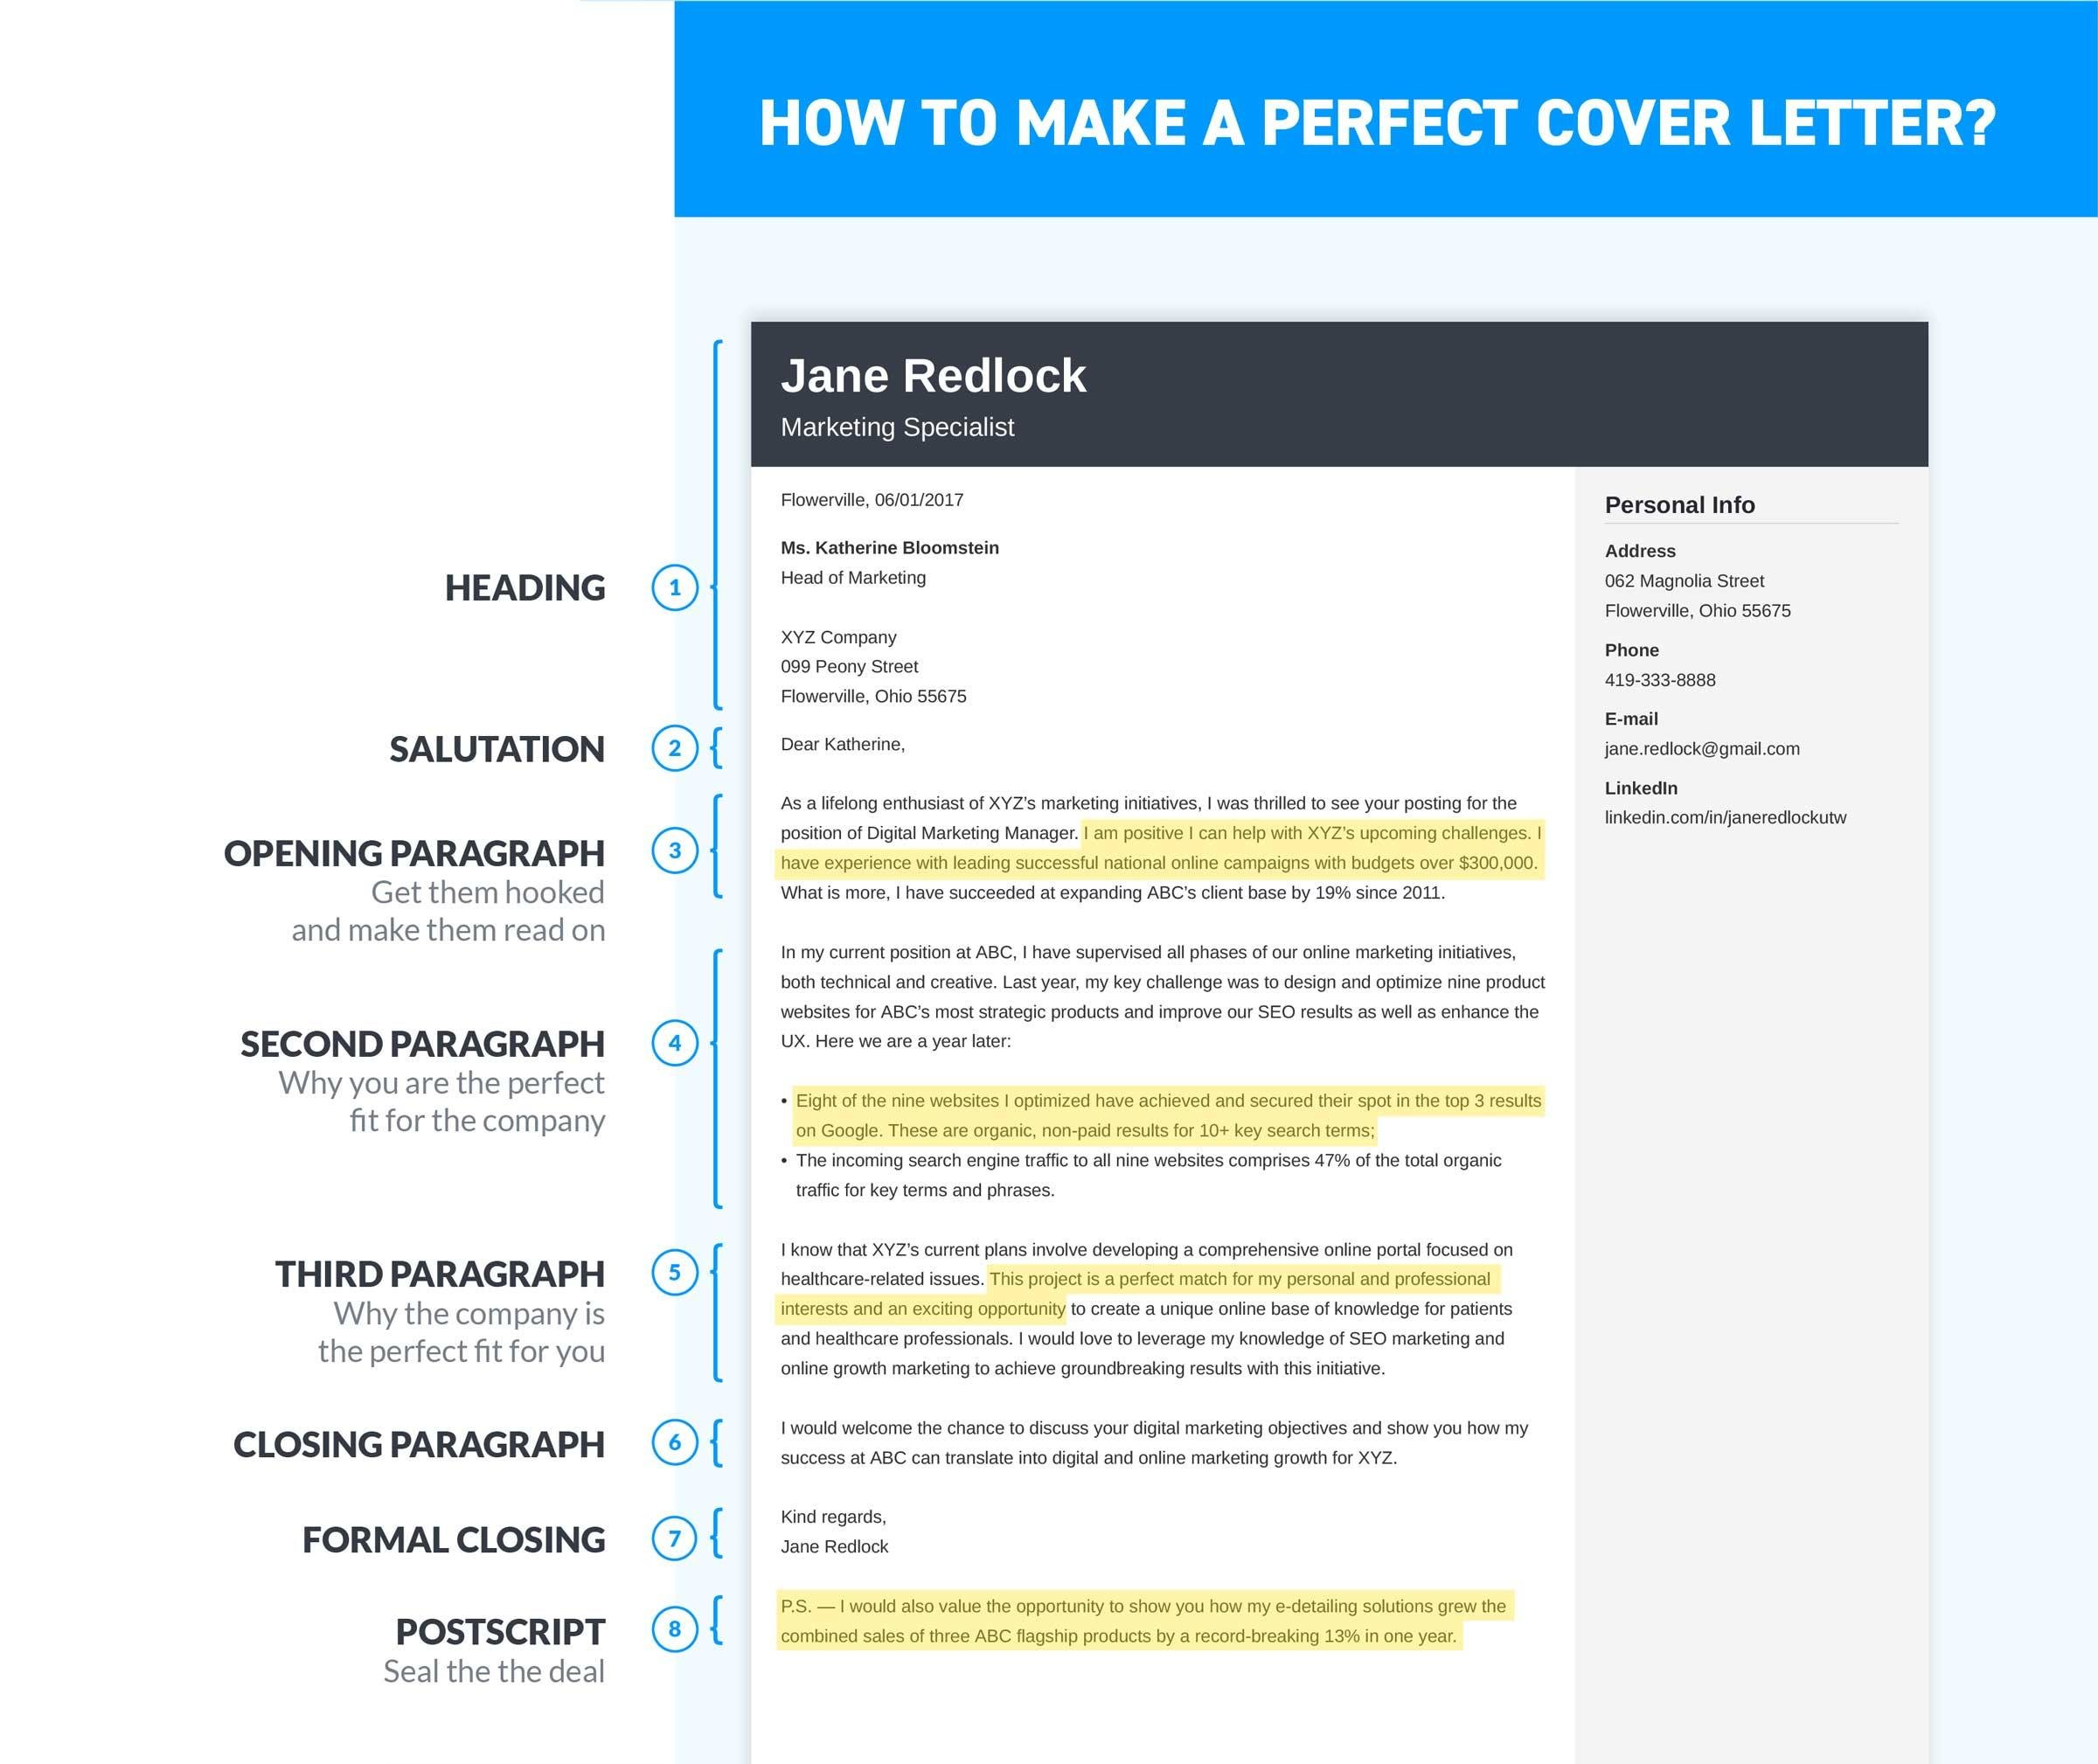 How to write a cover letter in 8 simple steps 12 examples how to make a perfect cover letter infographic madrichimfo Images